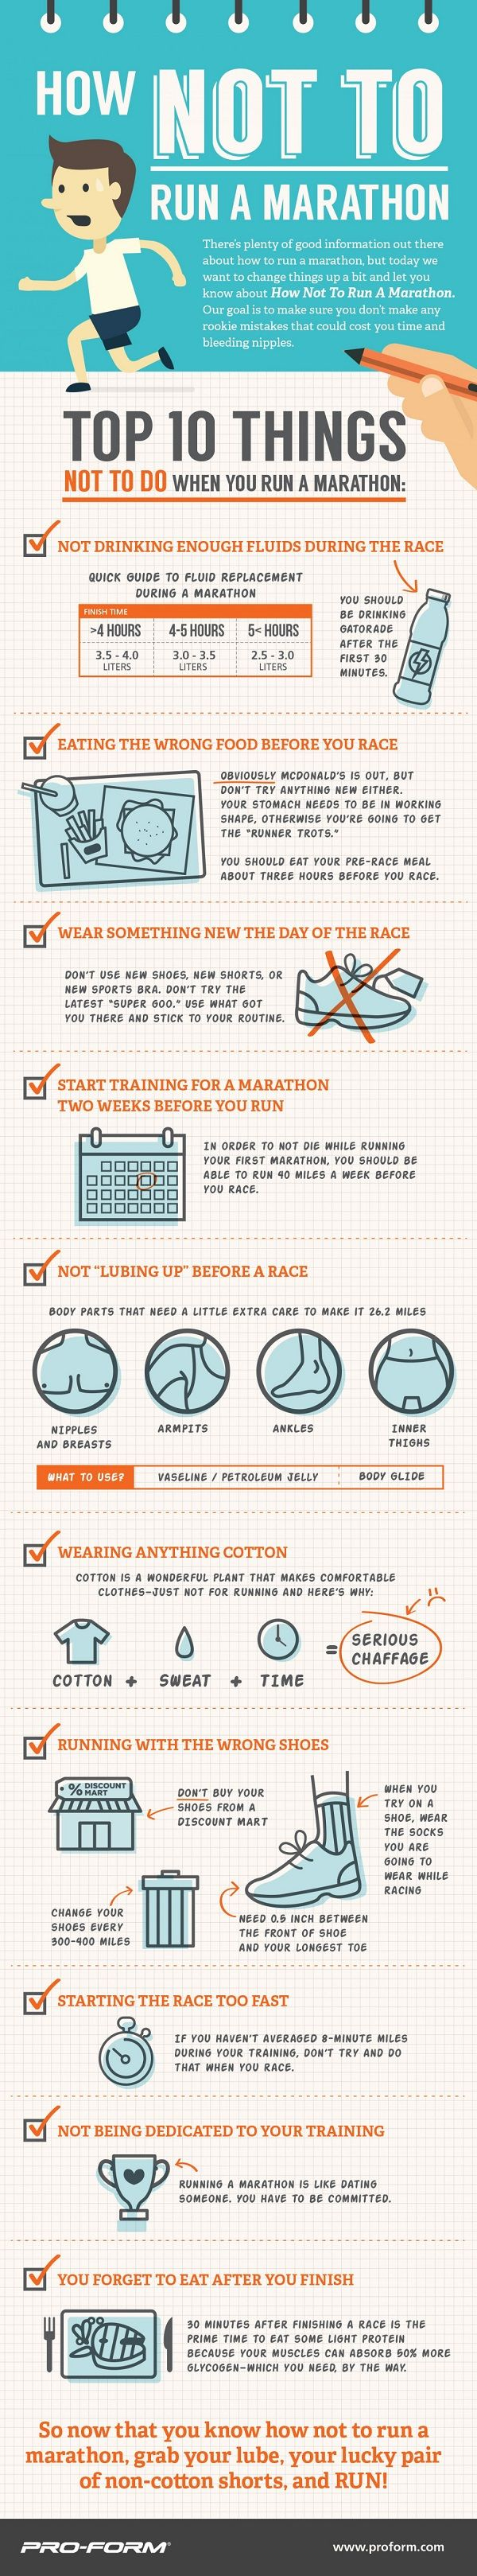 """The 10 """"rookie mistakes"""" that one can make when training or running."""